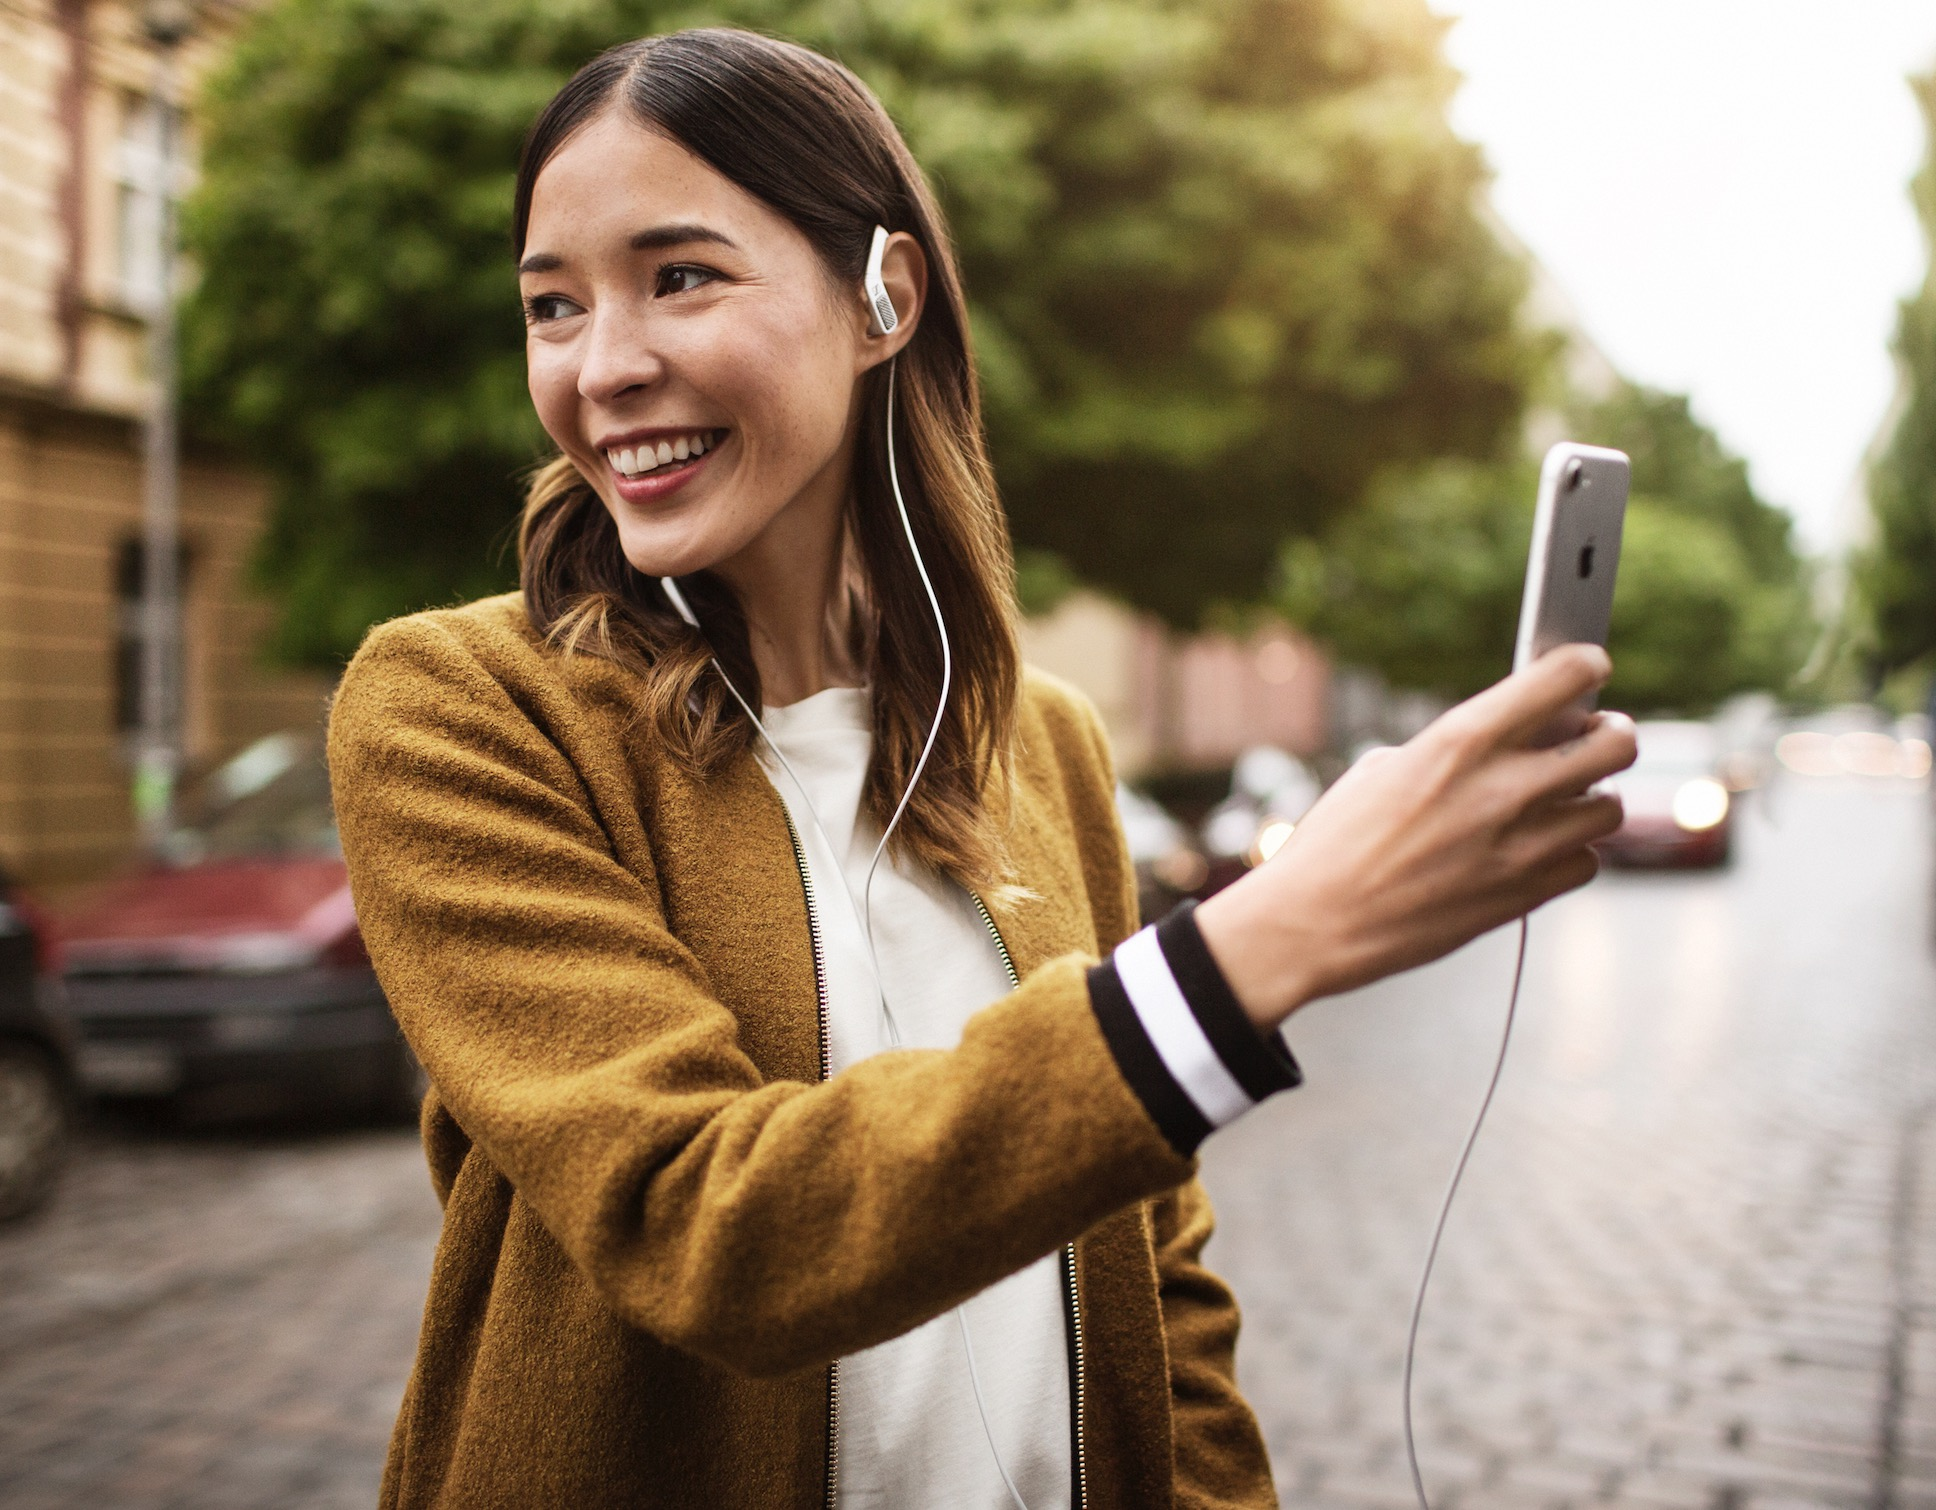 Ambeo Smart Headset Now Available In Black